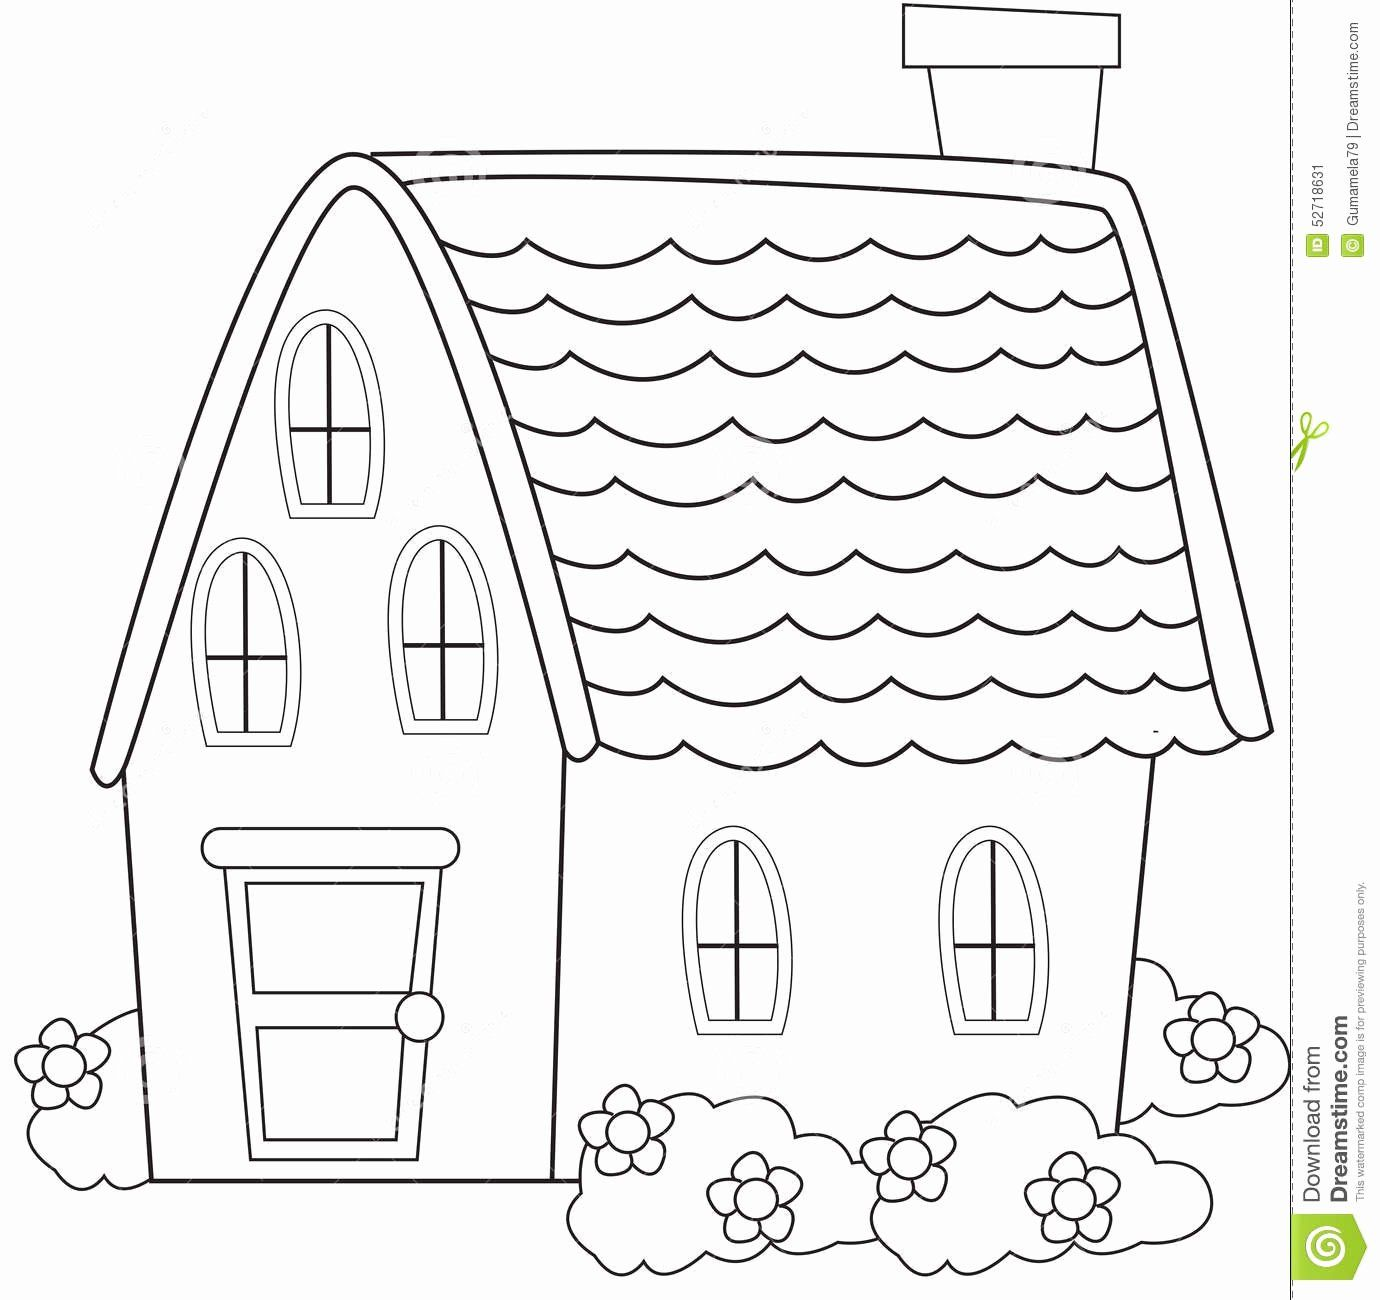 School House Coloring Sheets Elegant Coloring Pages Printable Coloring Book House Bunny Coloring Sheets Printable Coloring Book Coloring Books